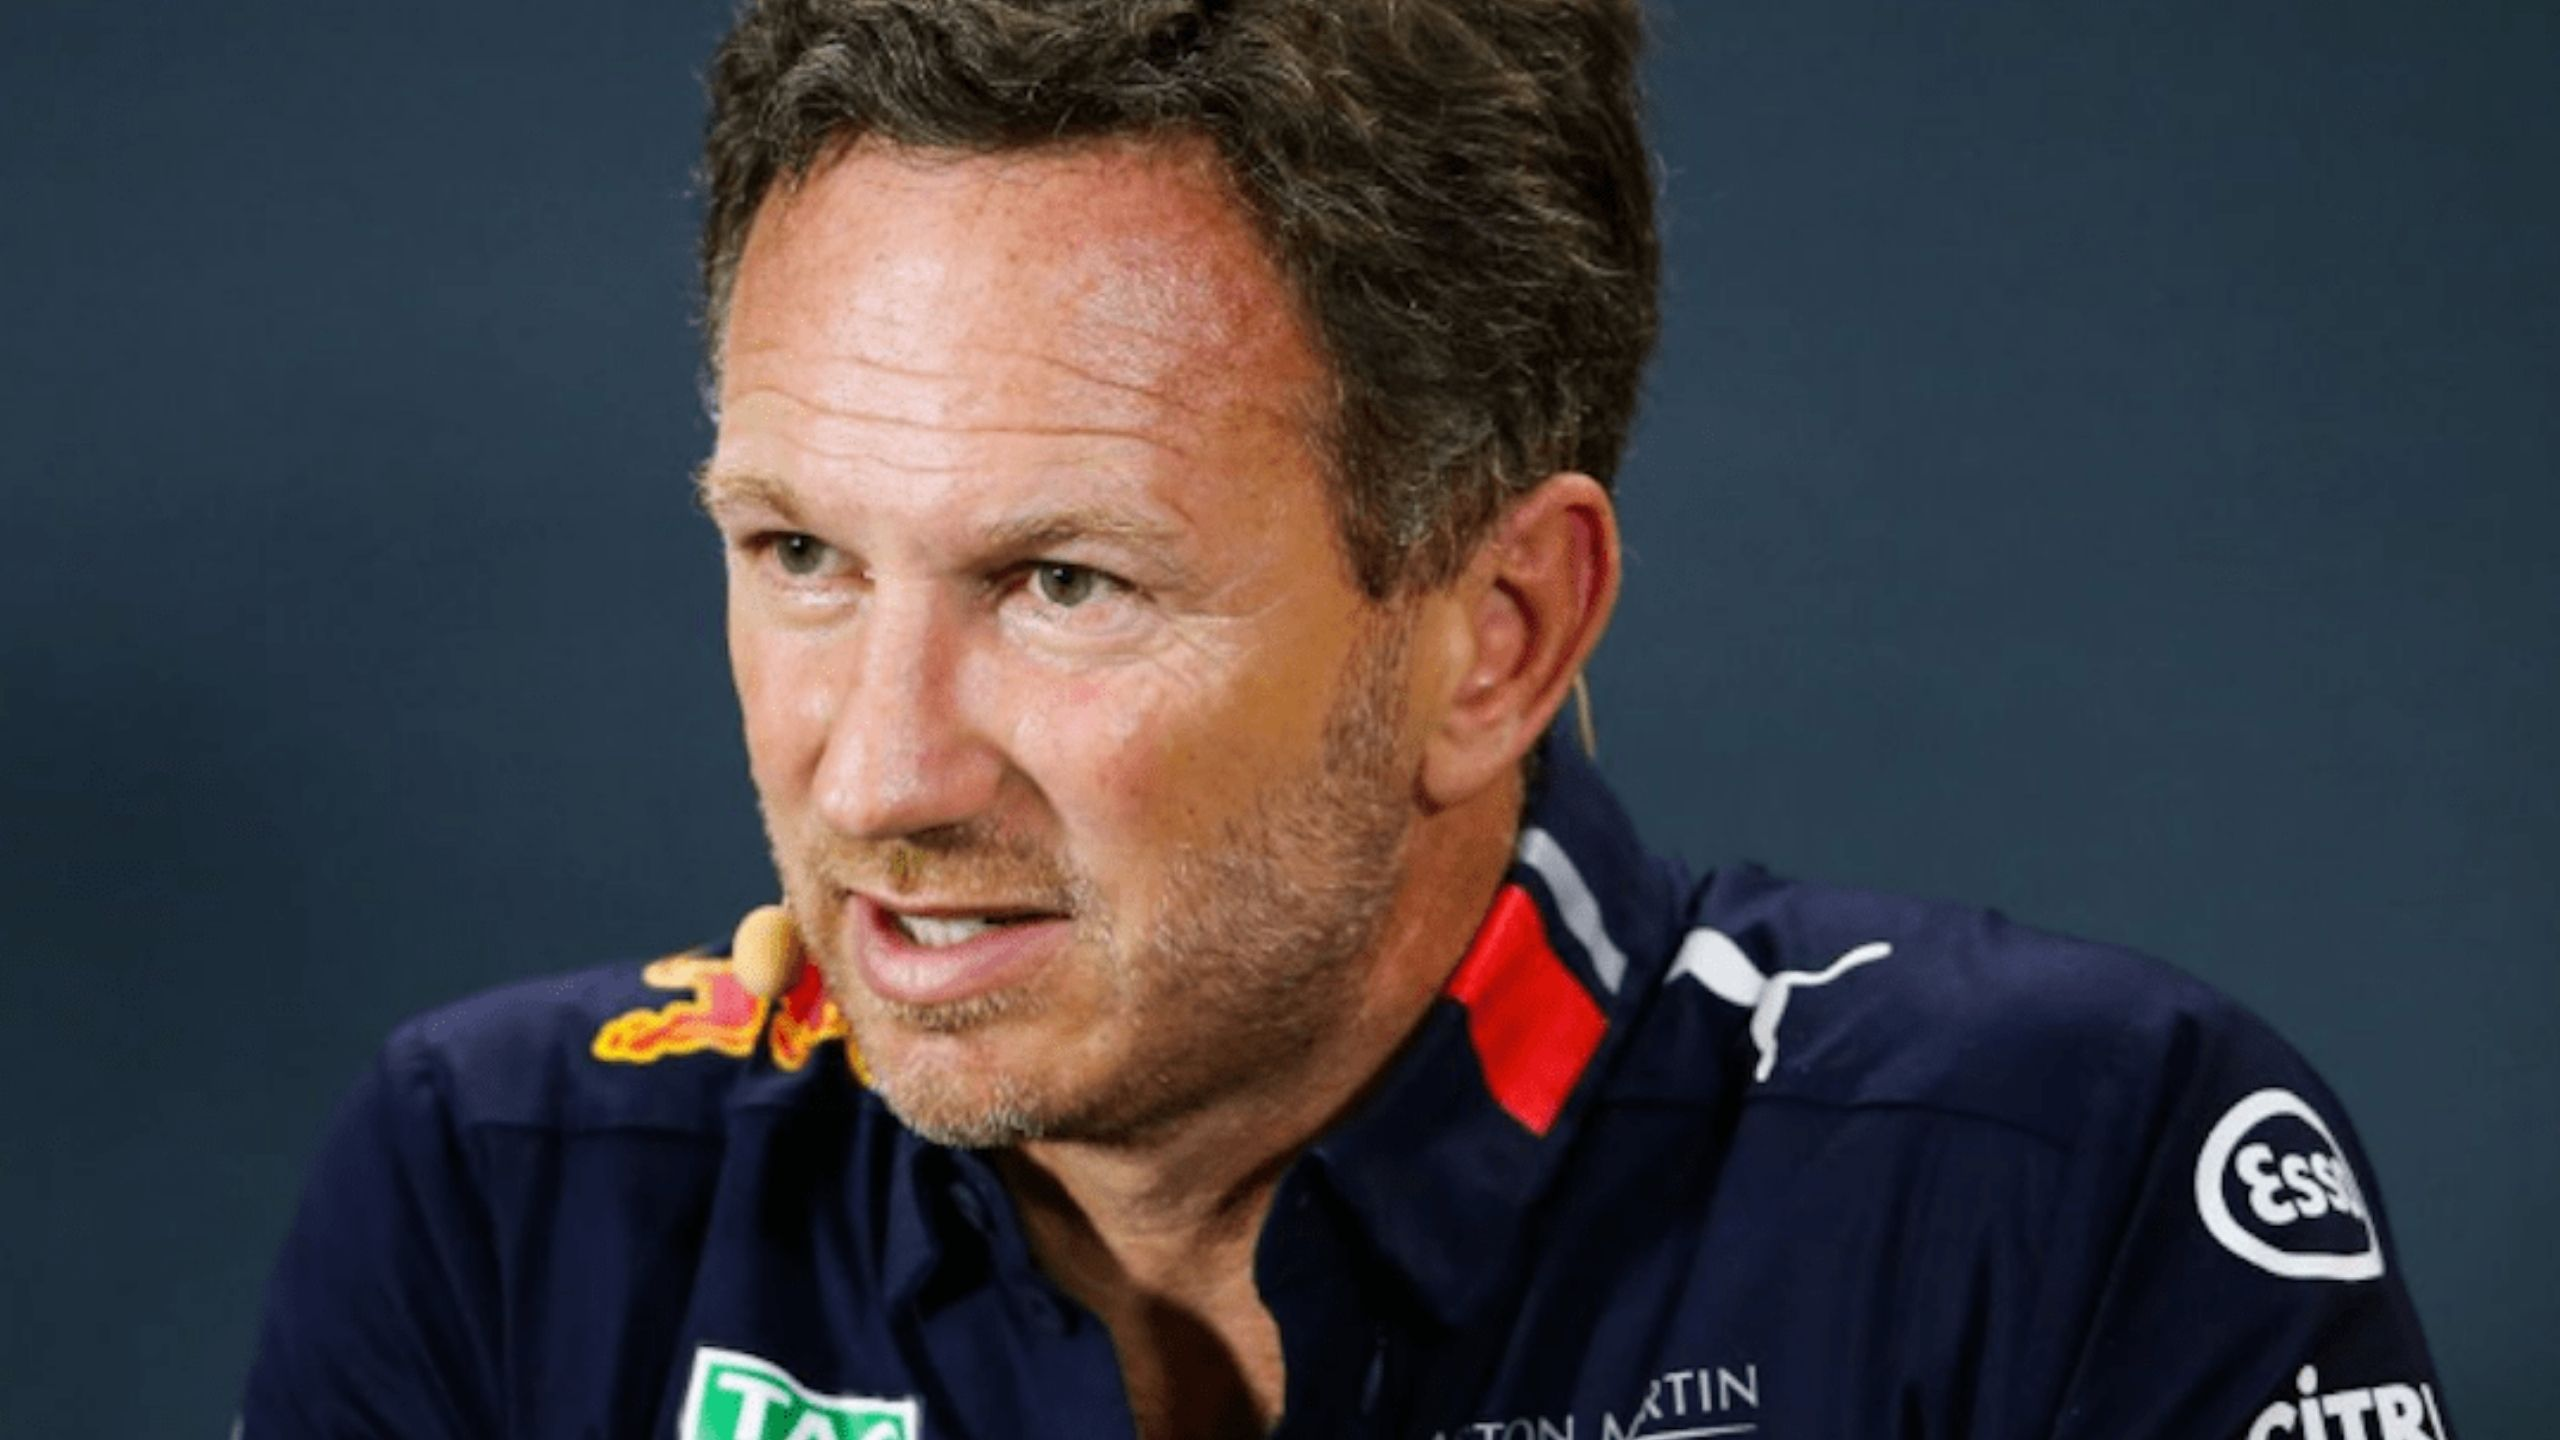 F1 Drivers' Salary Cap: Red Bull boss Christian Horner fears the drivers' salary cap regulation could get entangled legally